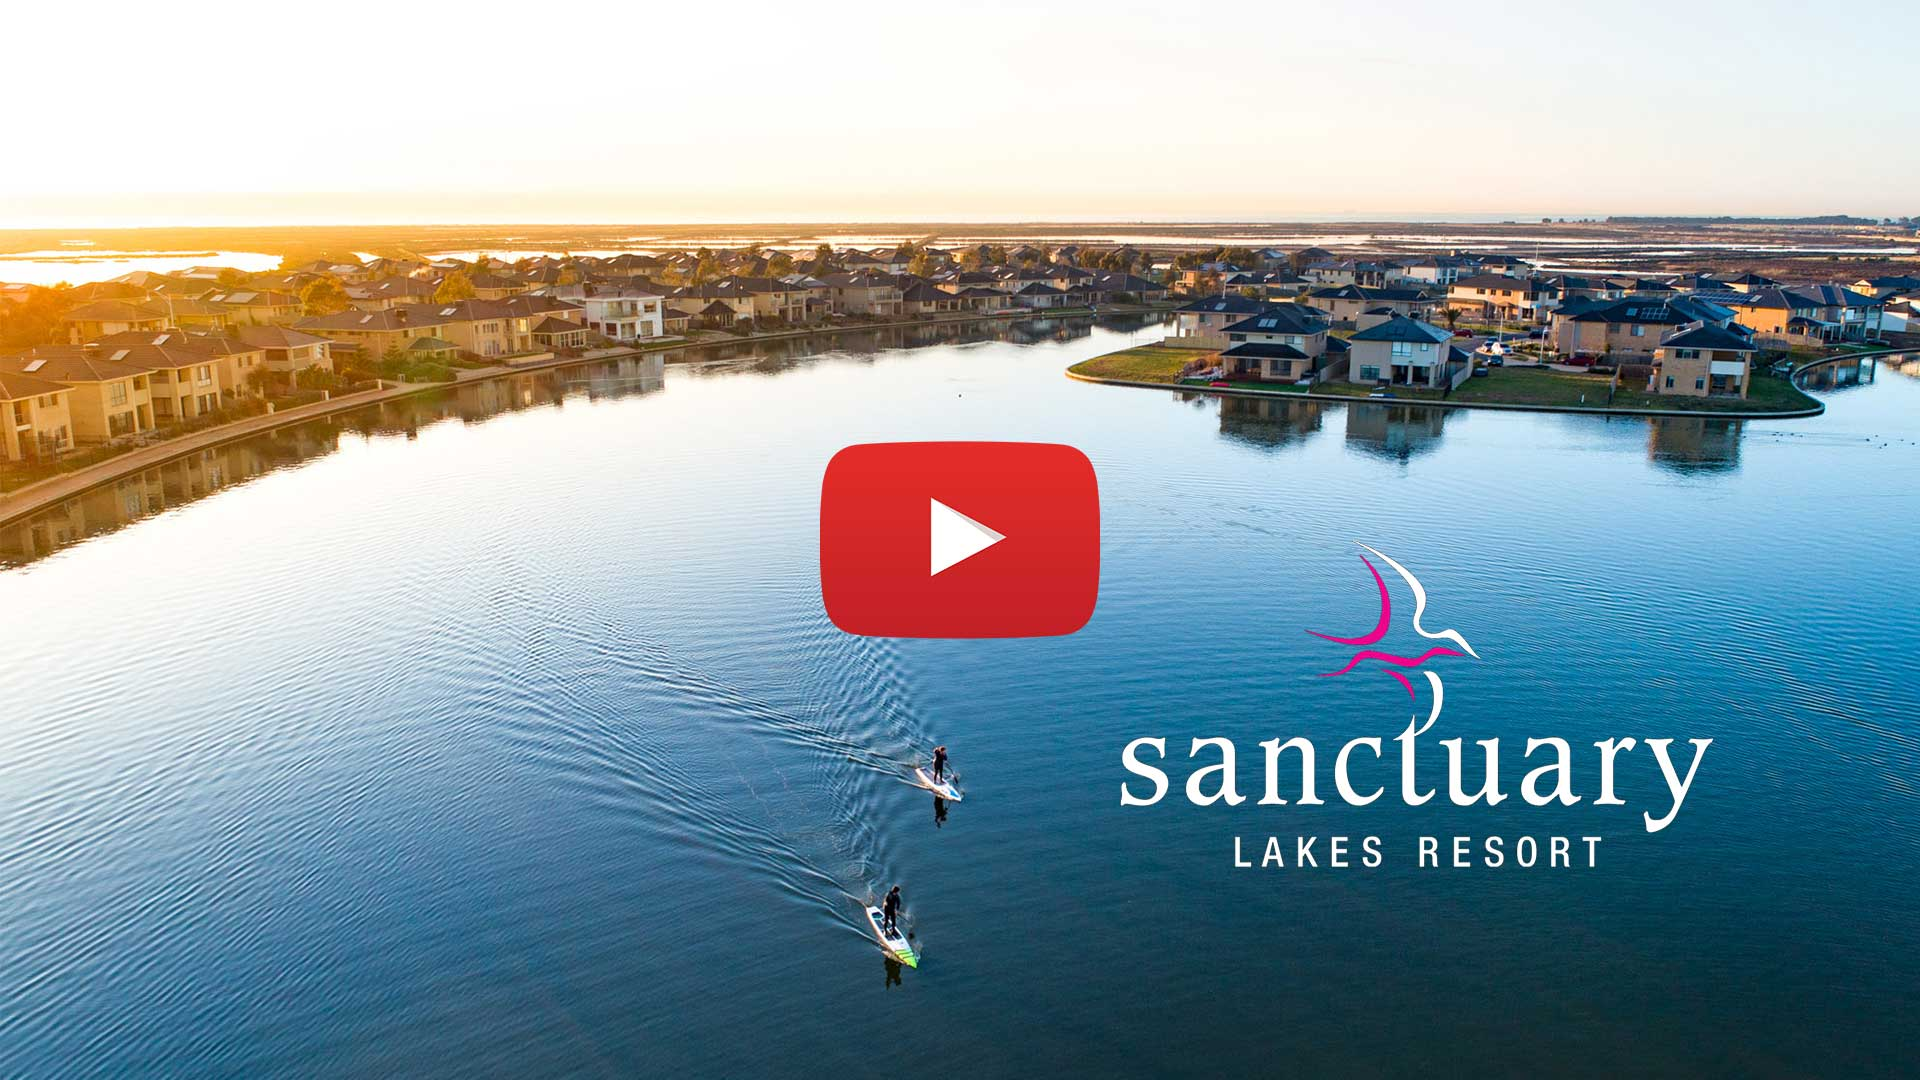 Sanctuary Lakes Resort